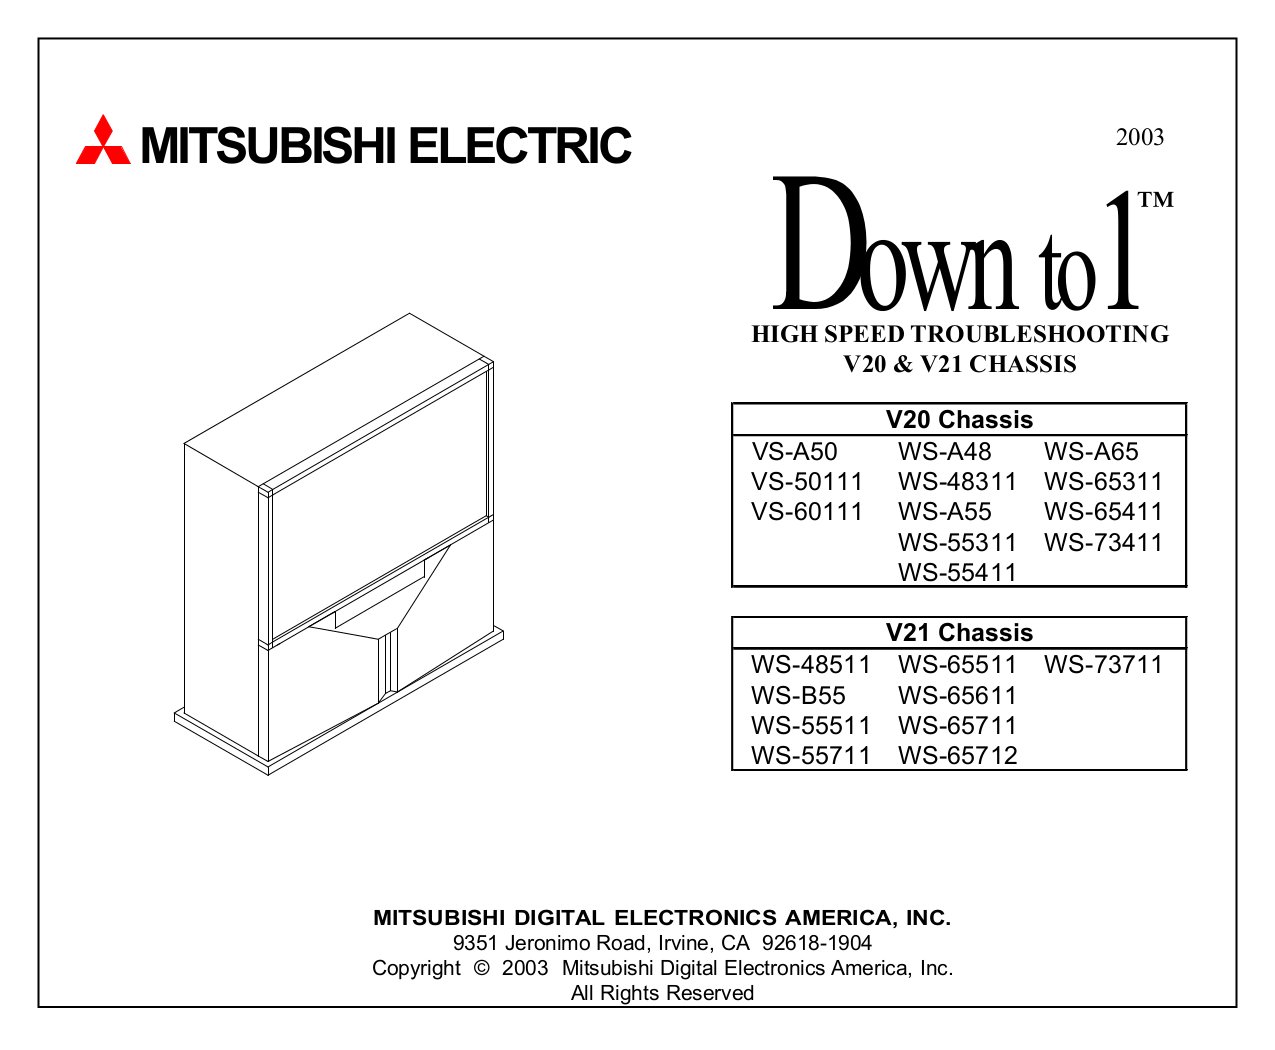 Download Free Pdf For Mitsubishi Ws 65511 Tv Manual